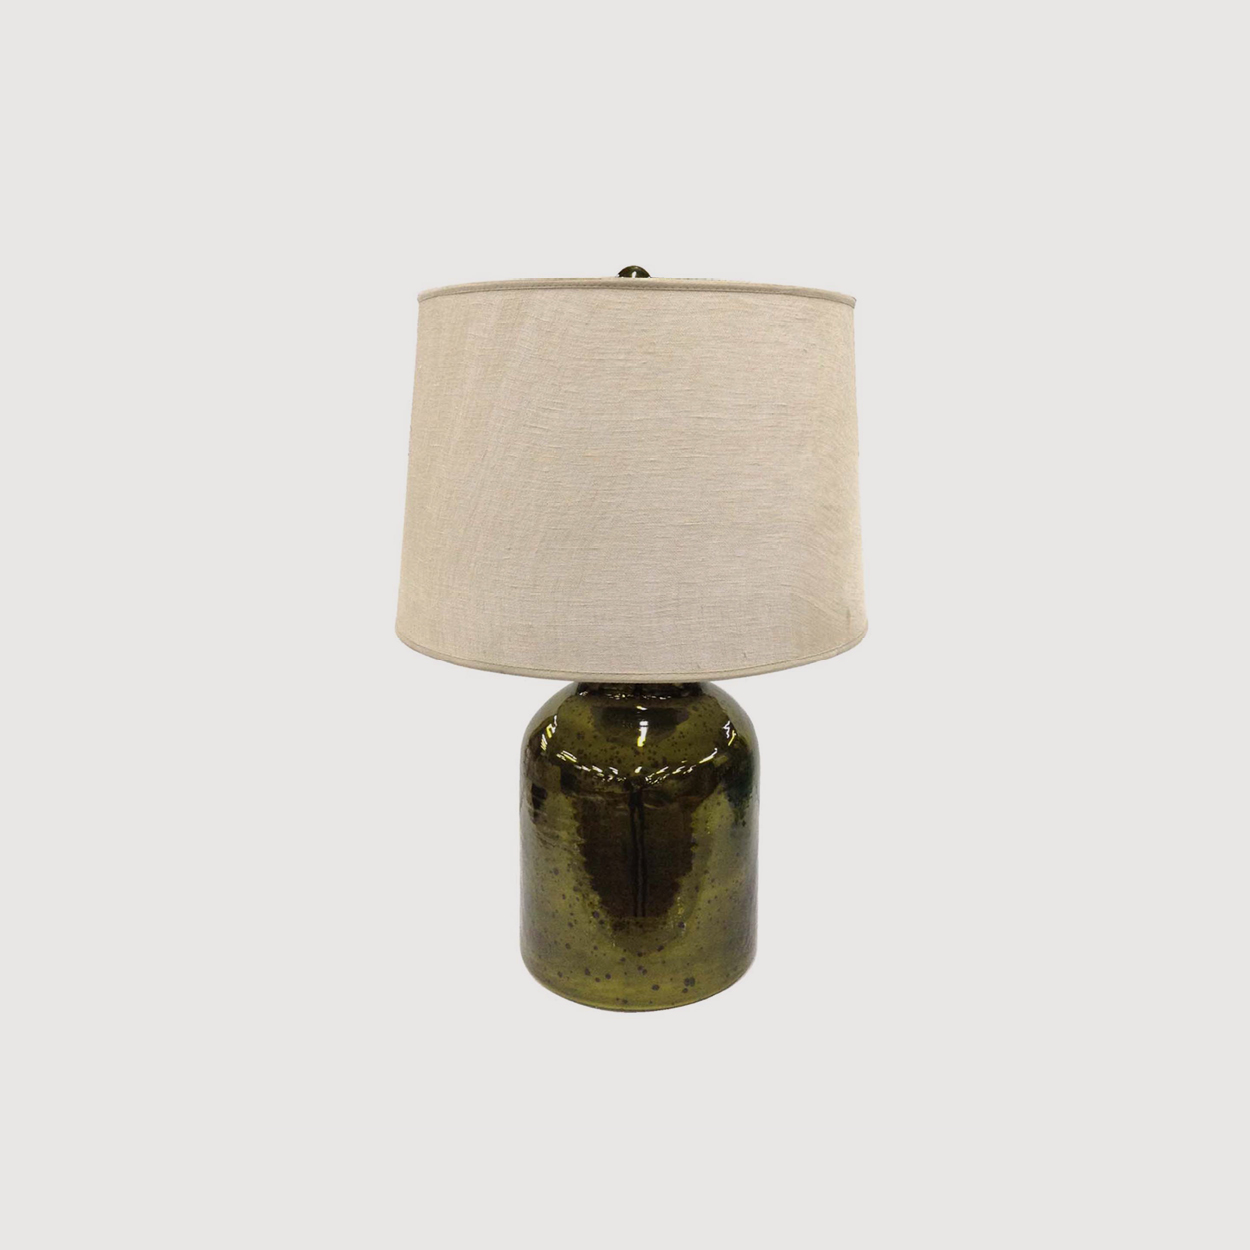 Olive Green Bottle Table Lamp with Natural Linen Shade gallery image